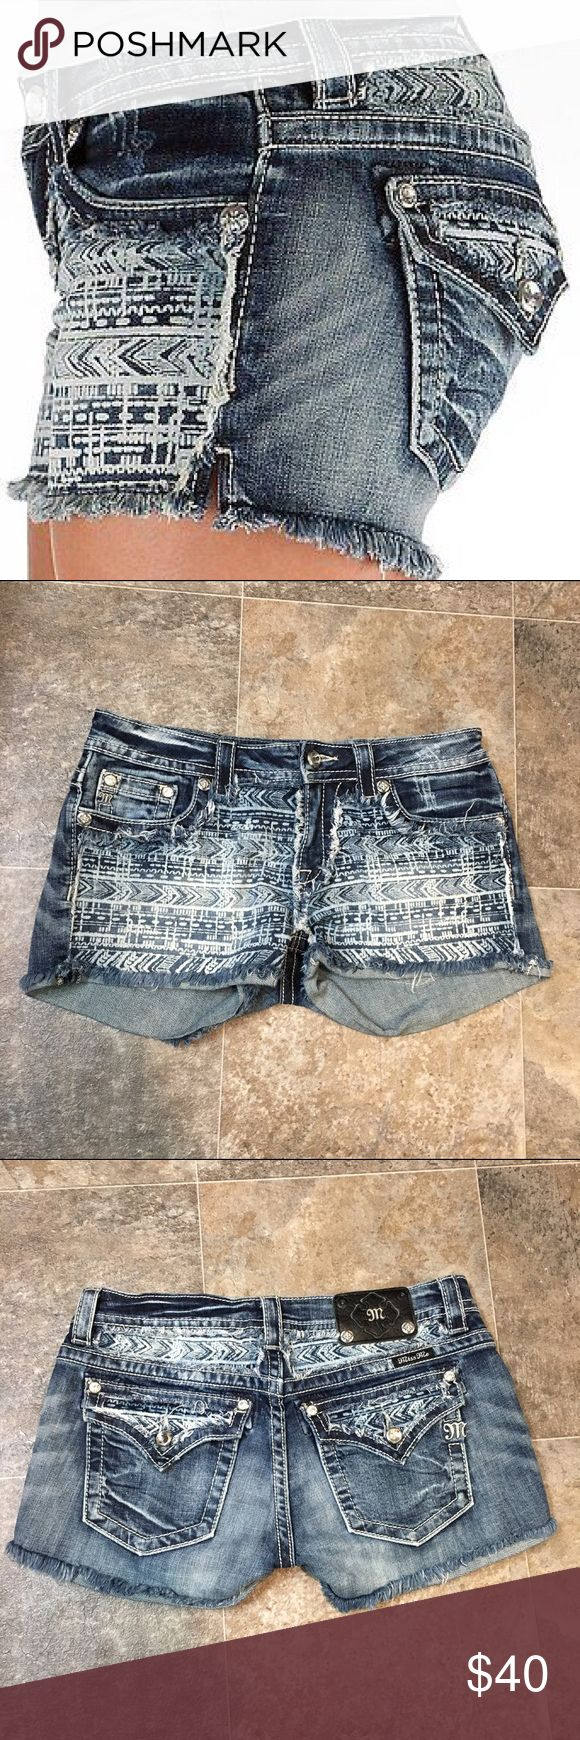 Miss me Aztec jean shorts Prep for the summer with these fun Aztec Miss Me jean shorts. They have Aztec detailing on the front and back and they have a gem button in the front. They're a size 30. They're in great condition, the only flaw is that the Miss Me plate in the back is missing 2 buttons.   BUNDLE AND SAVE  NO TRADES REASONABLE OFFERS CONSIDERED  FEEL FREE TO ASK QUESTIONS I DO NOT MODEL Miss Me Shorts Jean Shorts